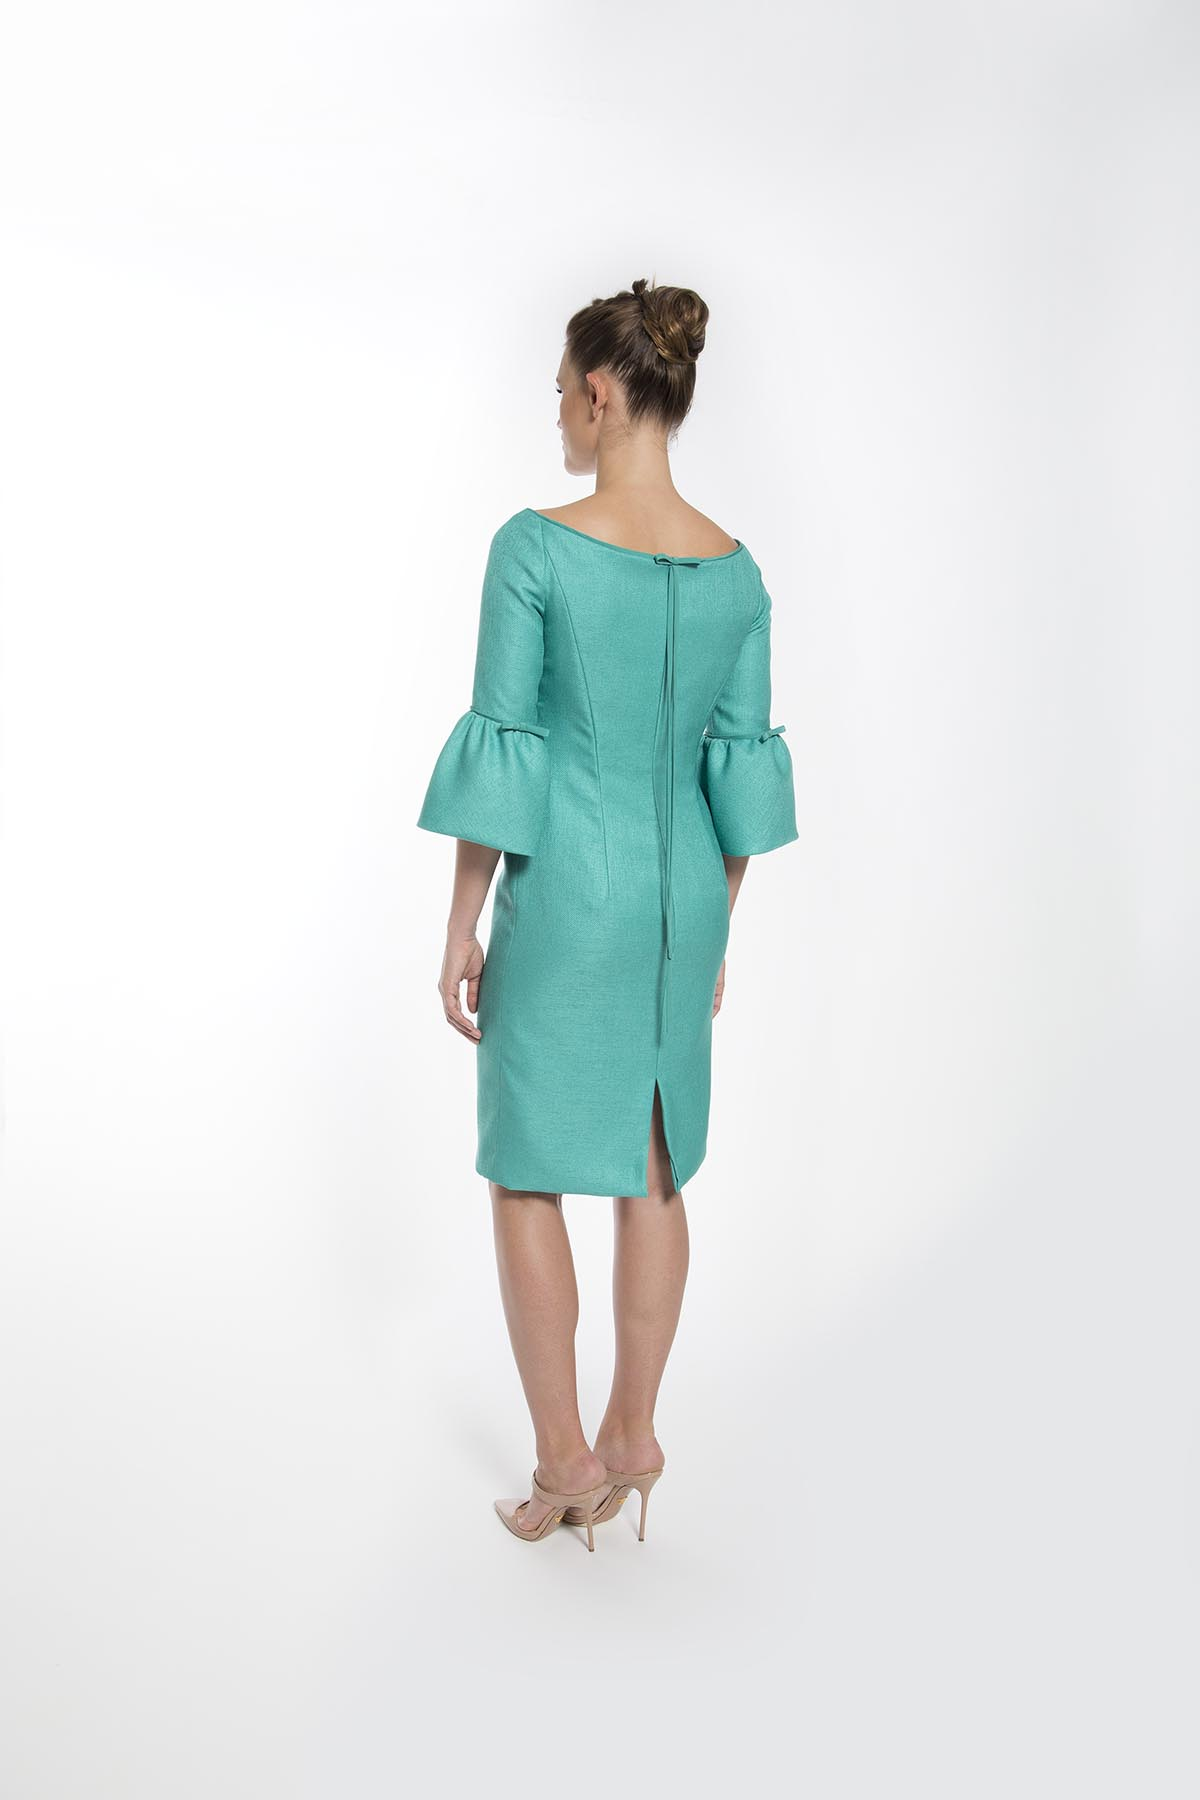 JADE COCKTAIL DRESS